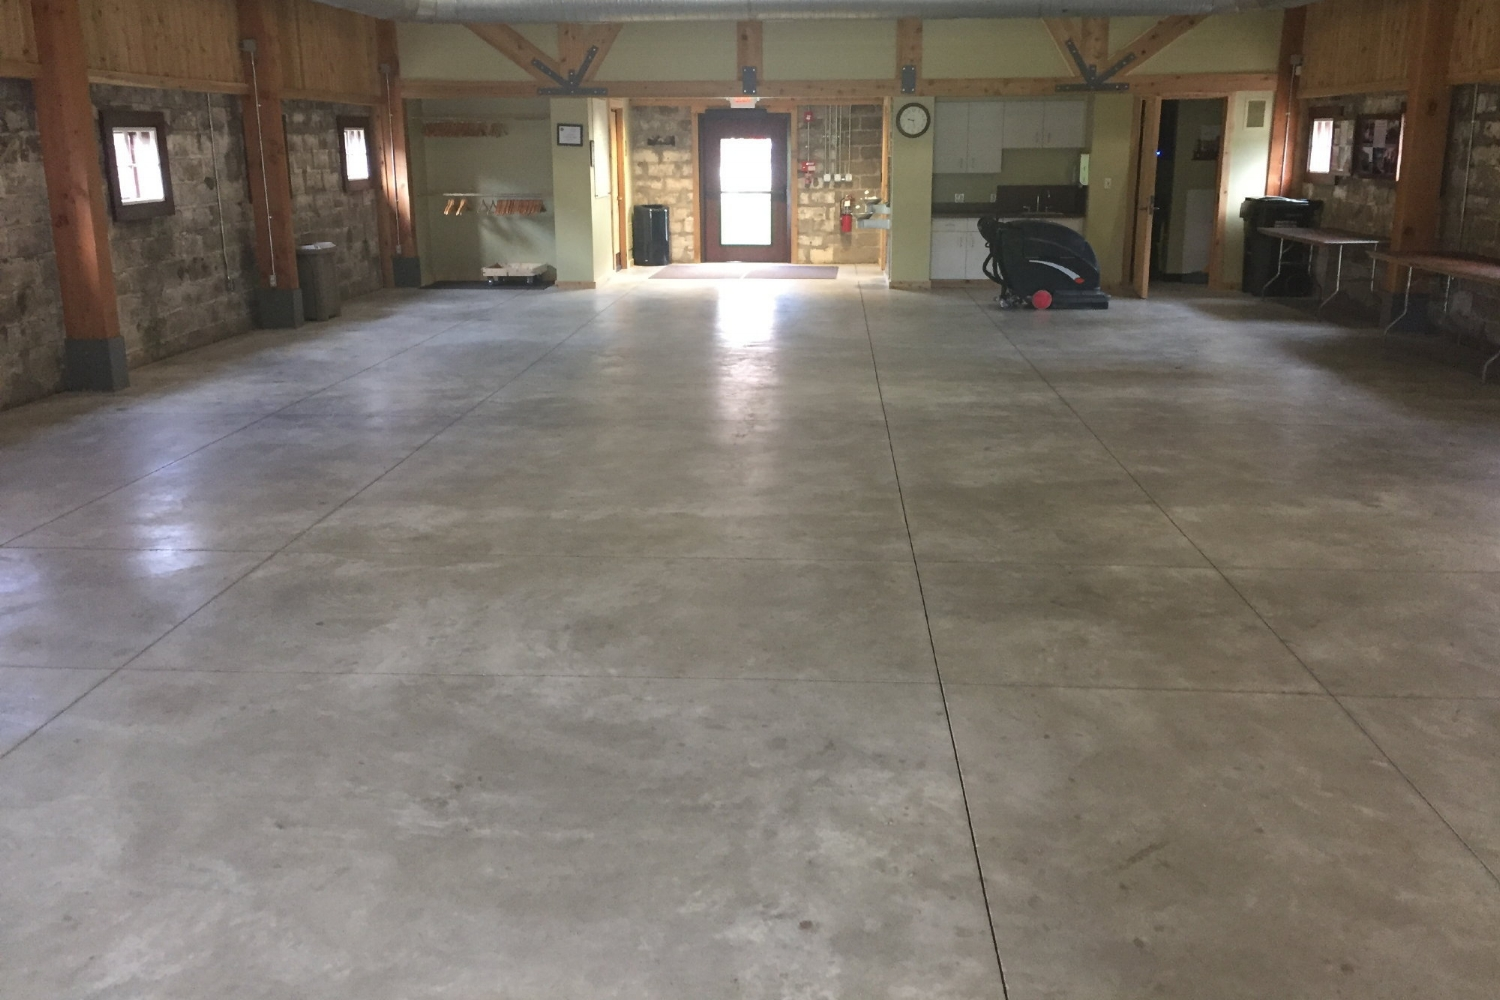 Unsealed, Discolored Museum Concrete Floor Before Cleaning And Sealing